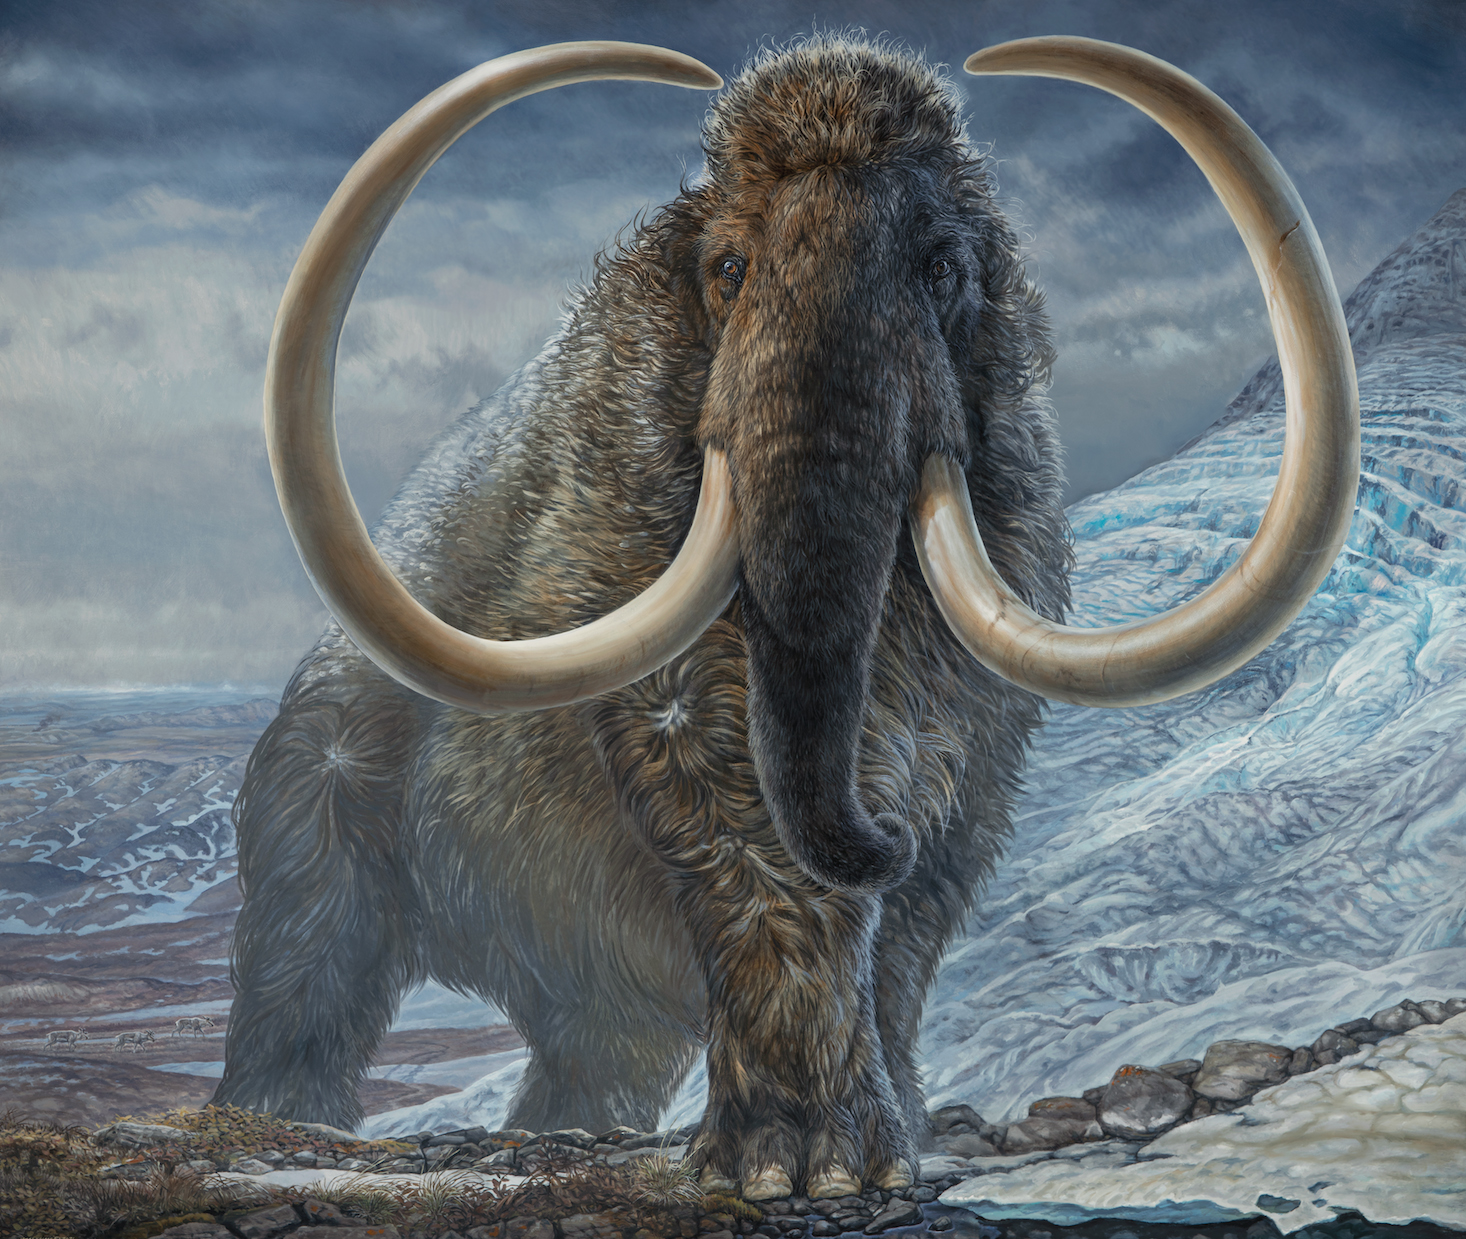 Rendering of wooly mammoth